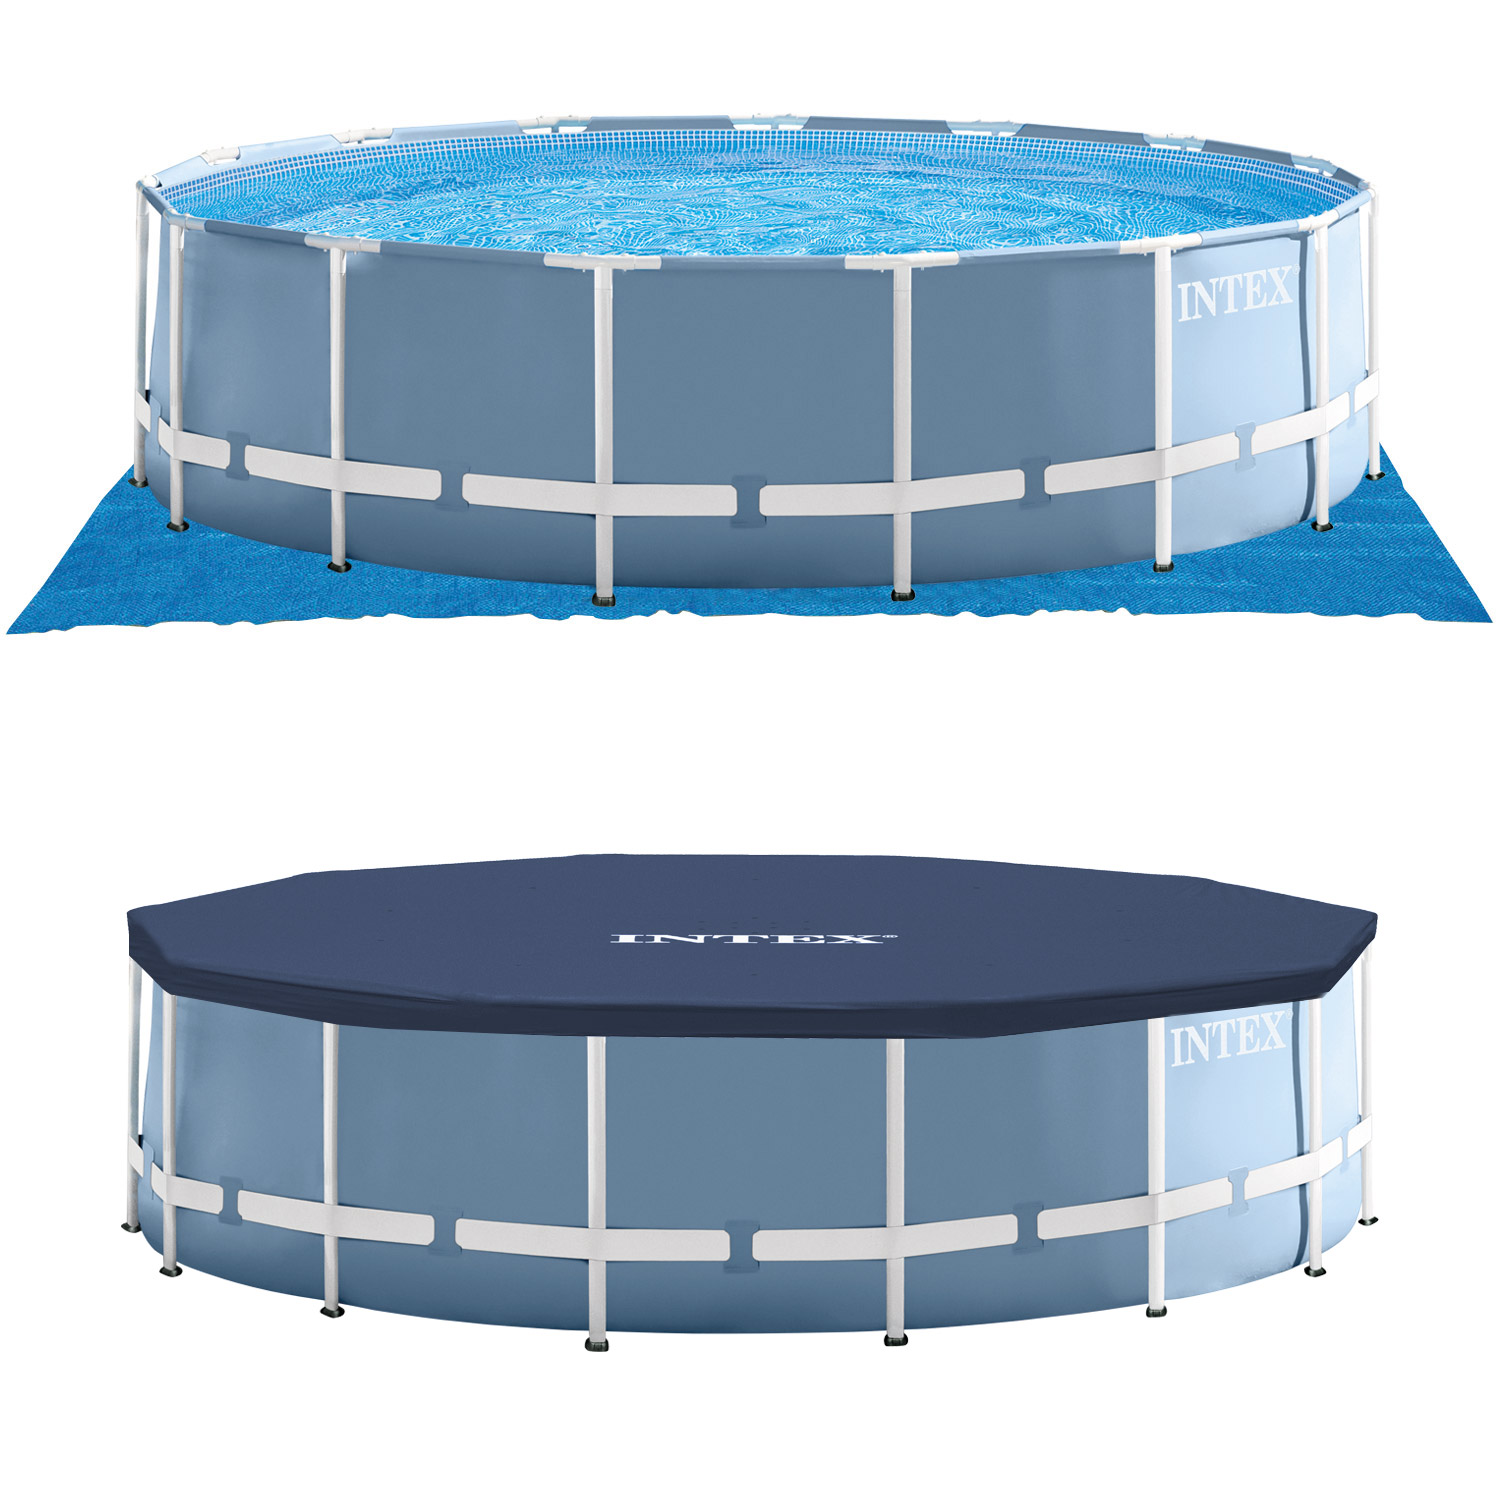 Intex swimming pool frame 457x122cm mit pumpe leiter for Swimmingpool stahl